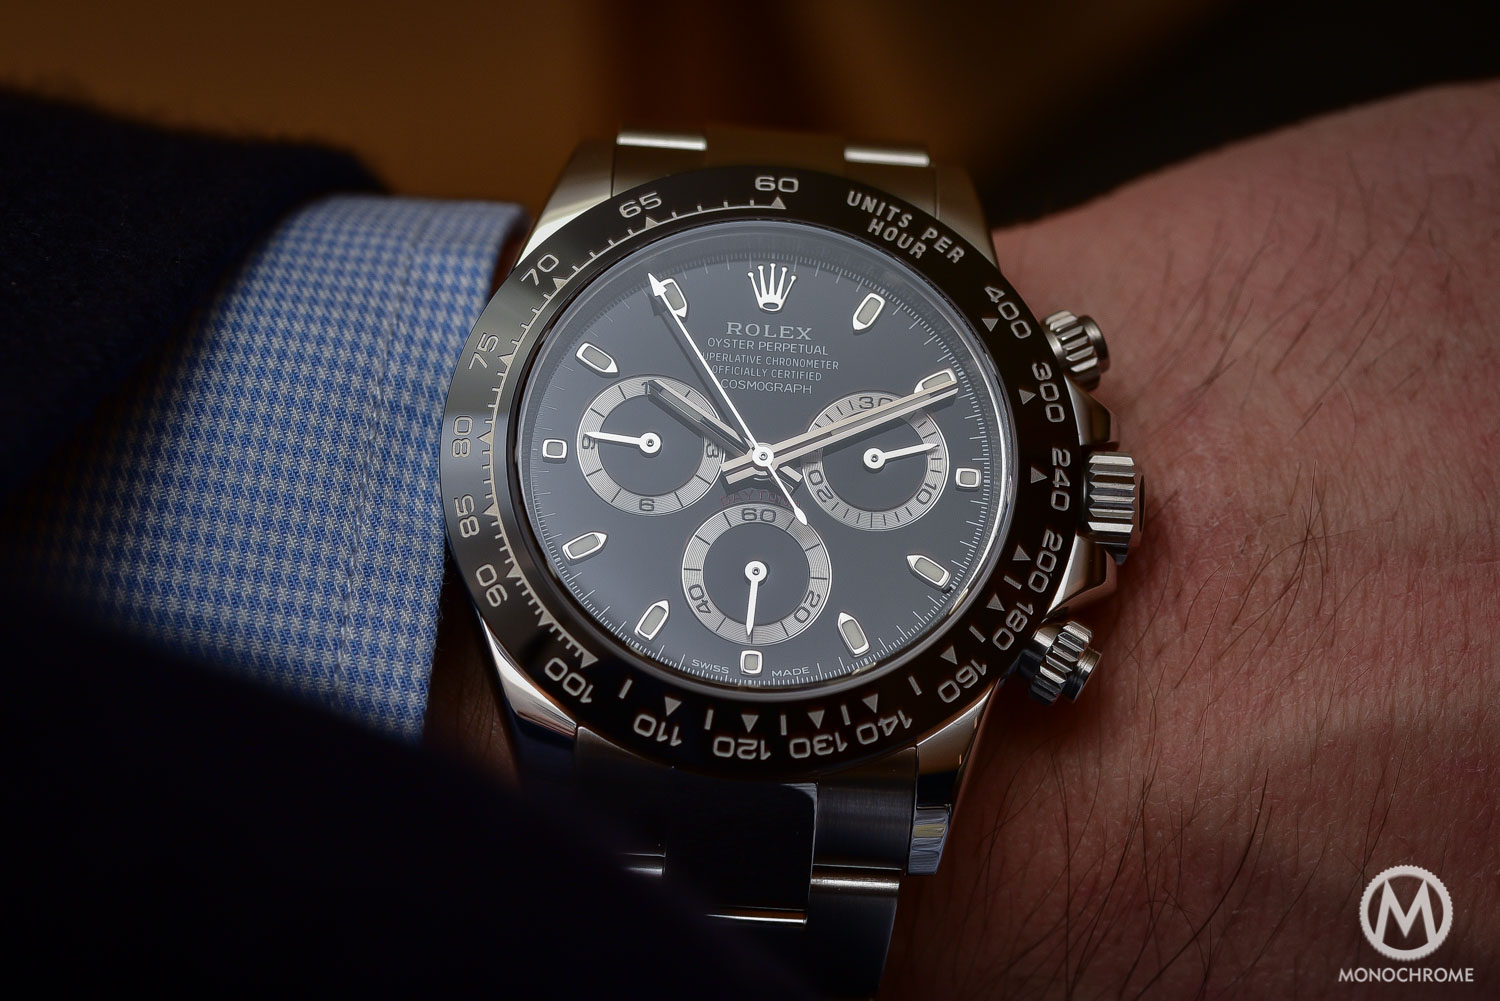 Rolex Daytona 116500LN in steel Cerachrom ceramic black bezel - 6